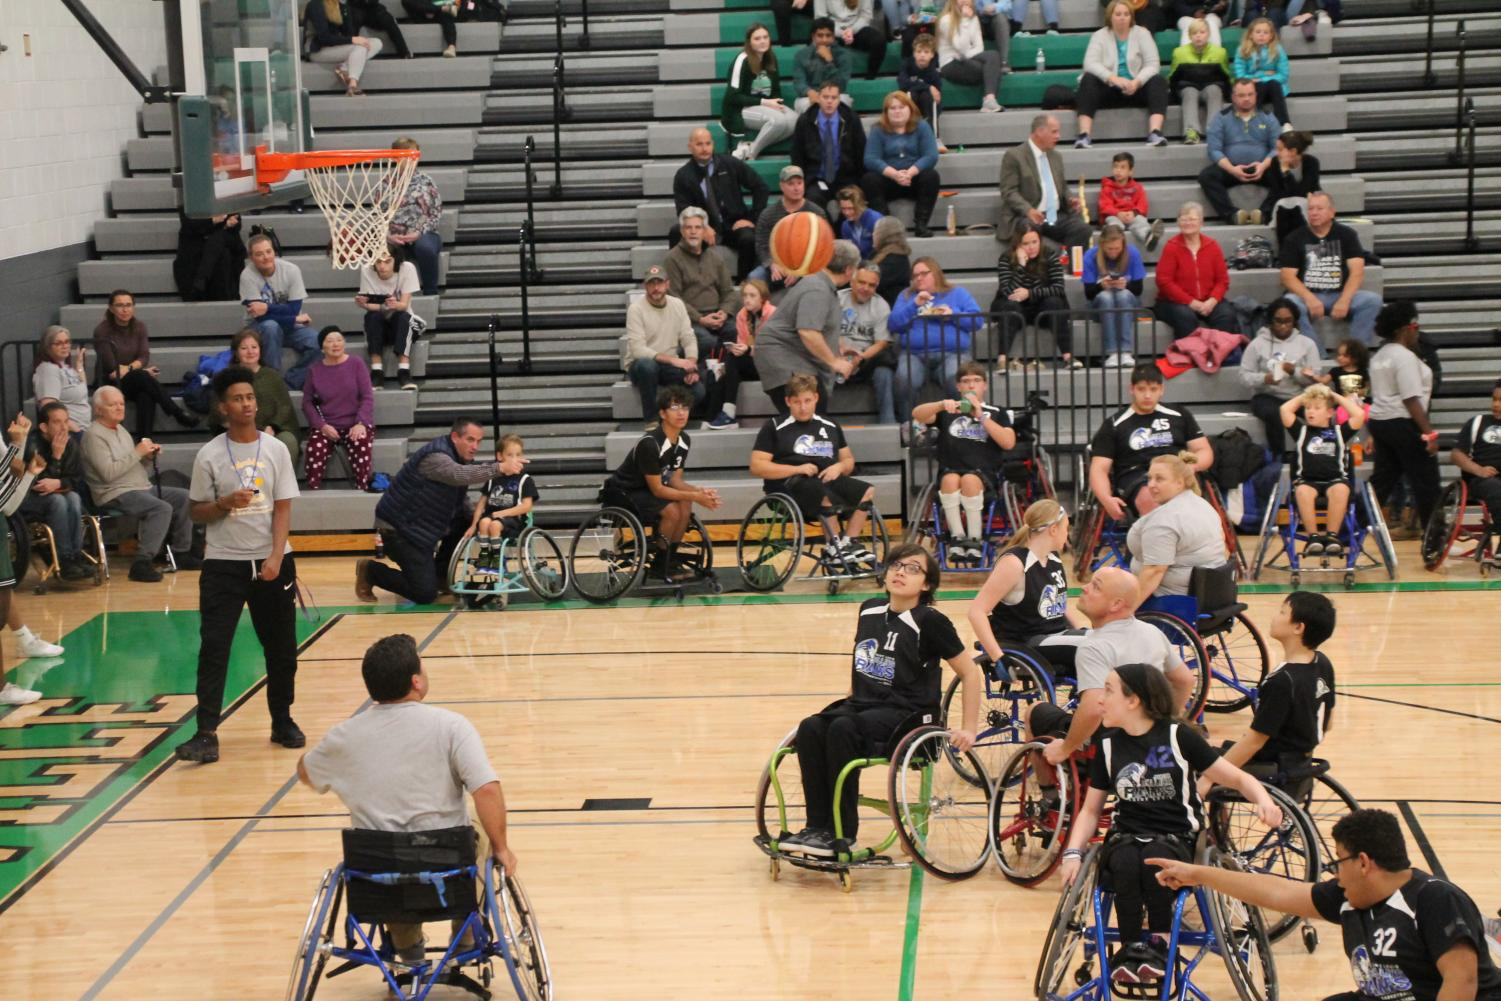 One of the Rolling Rams team members trying to make a shot against Pattonville Teachers